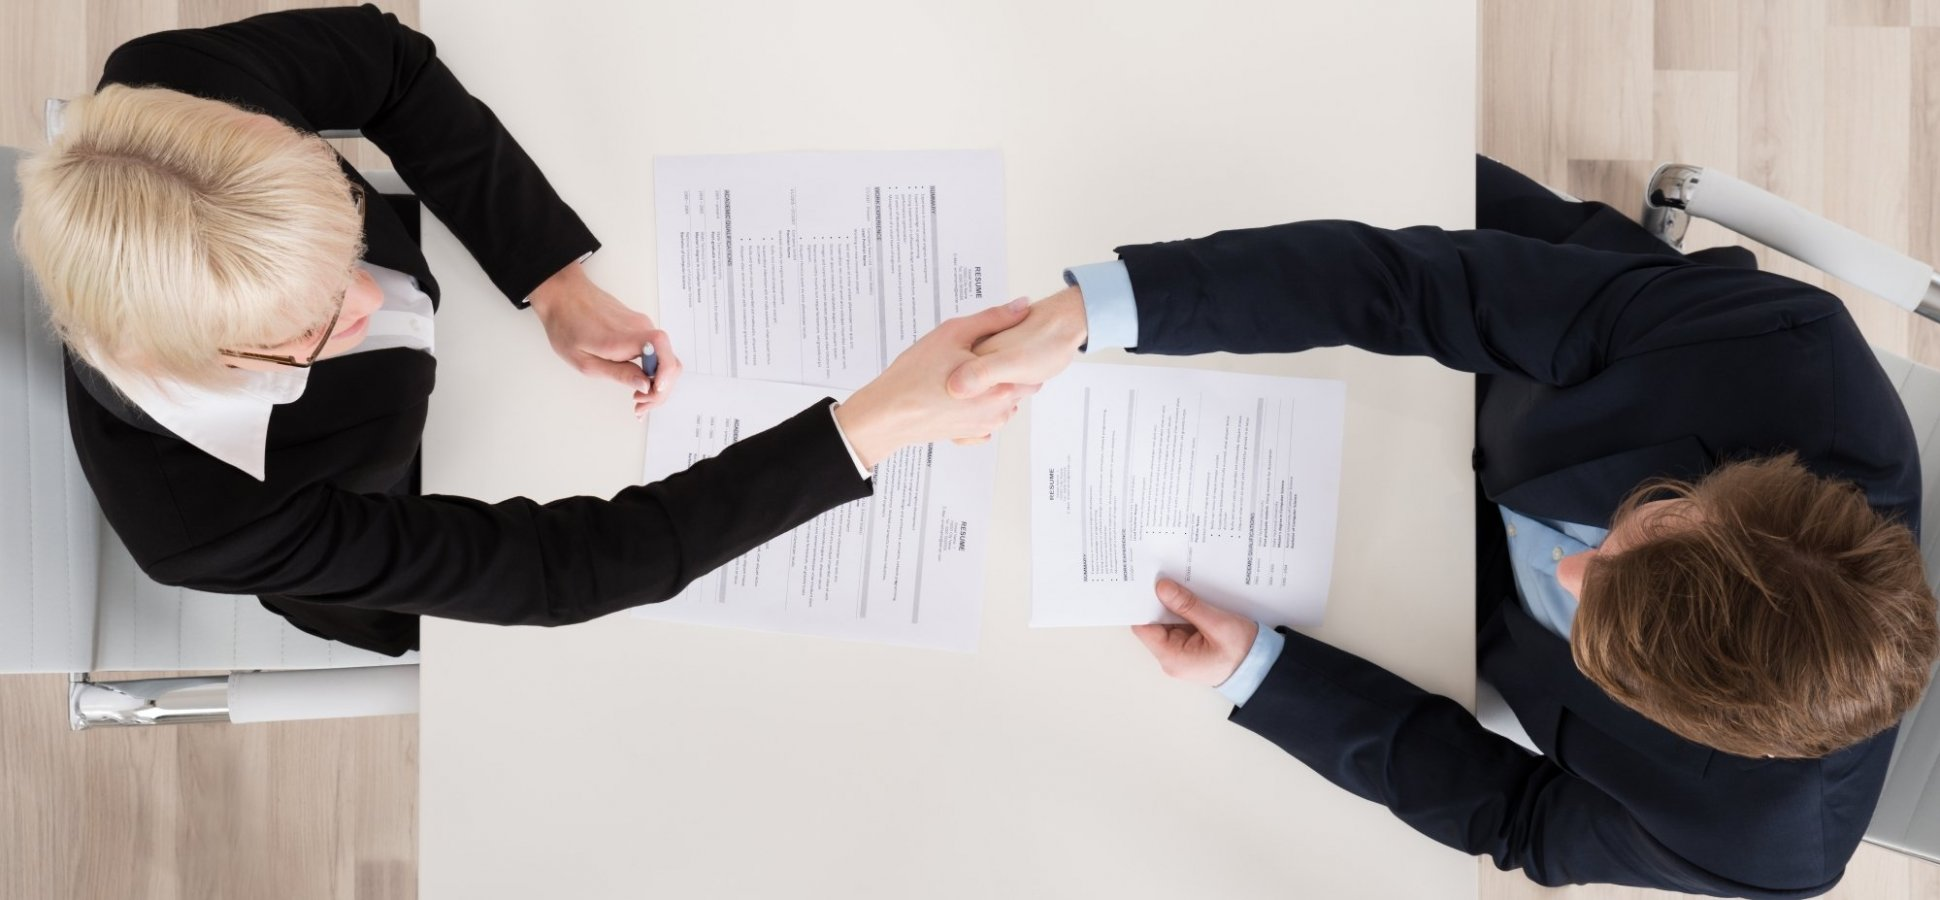 Recruiters Share Can't-Miss Interview Questions and Methods to Disarm Candidates